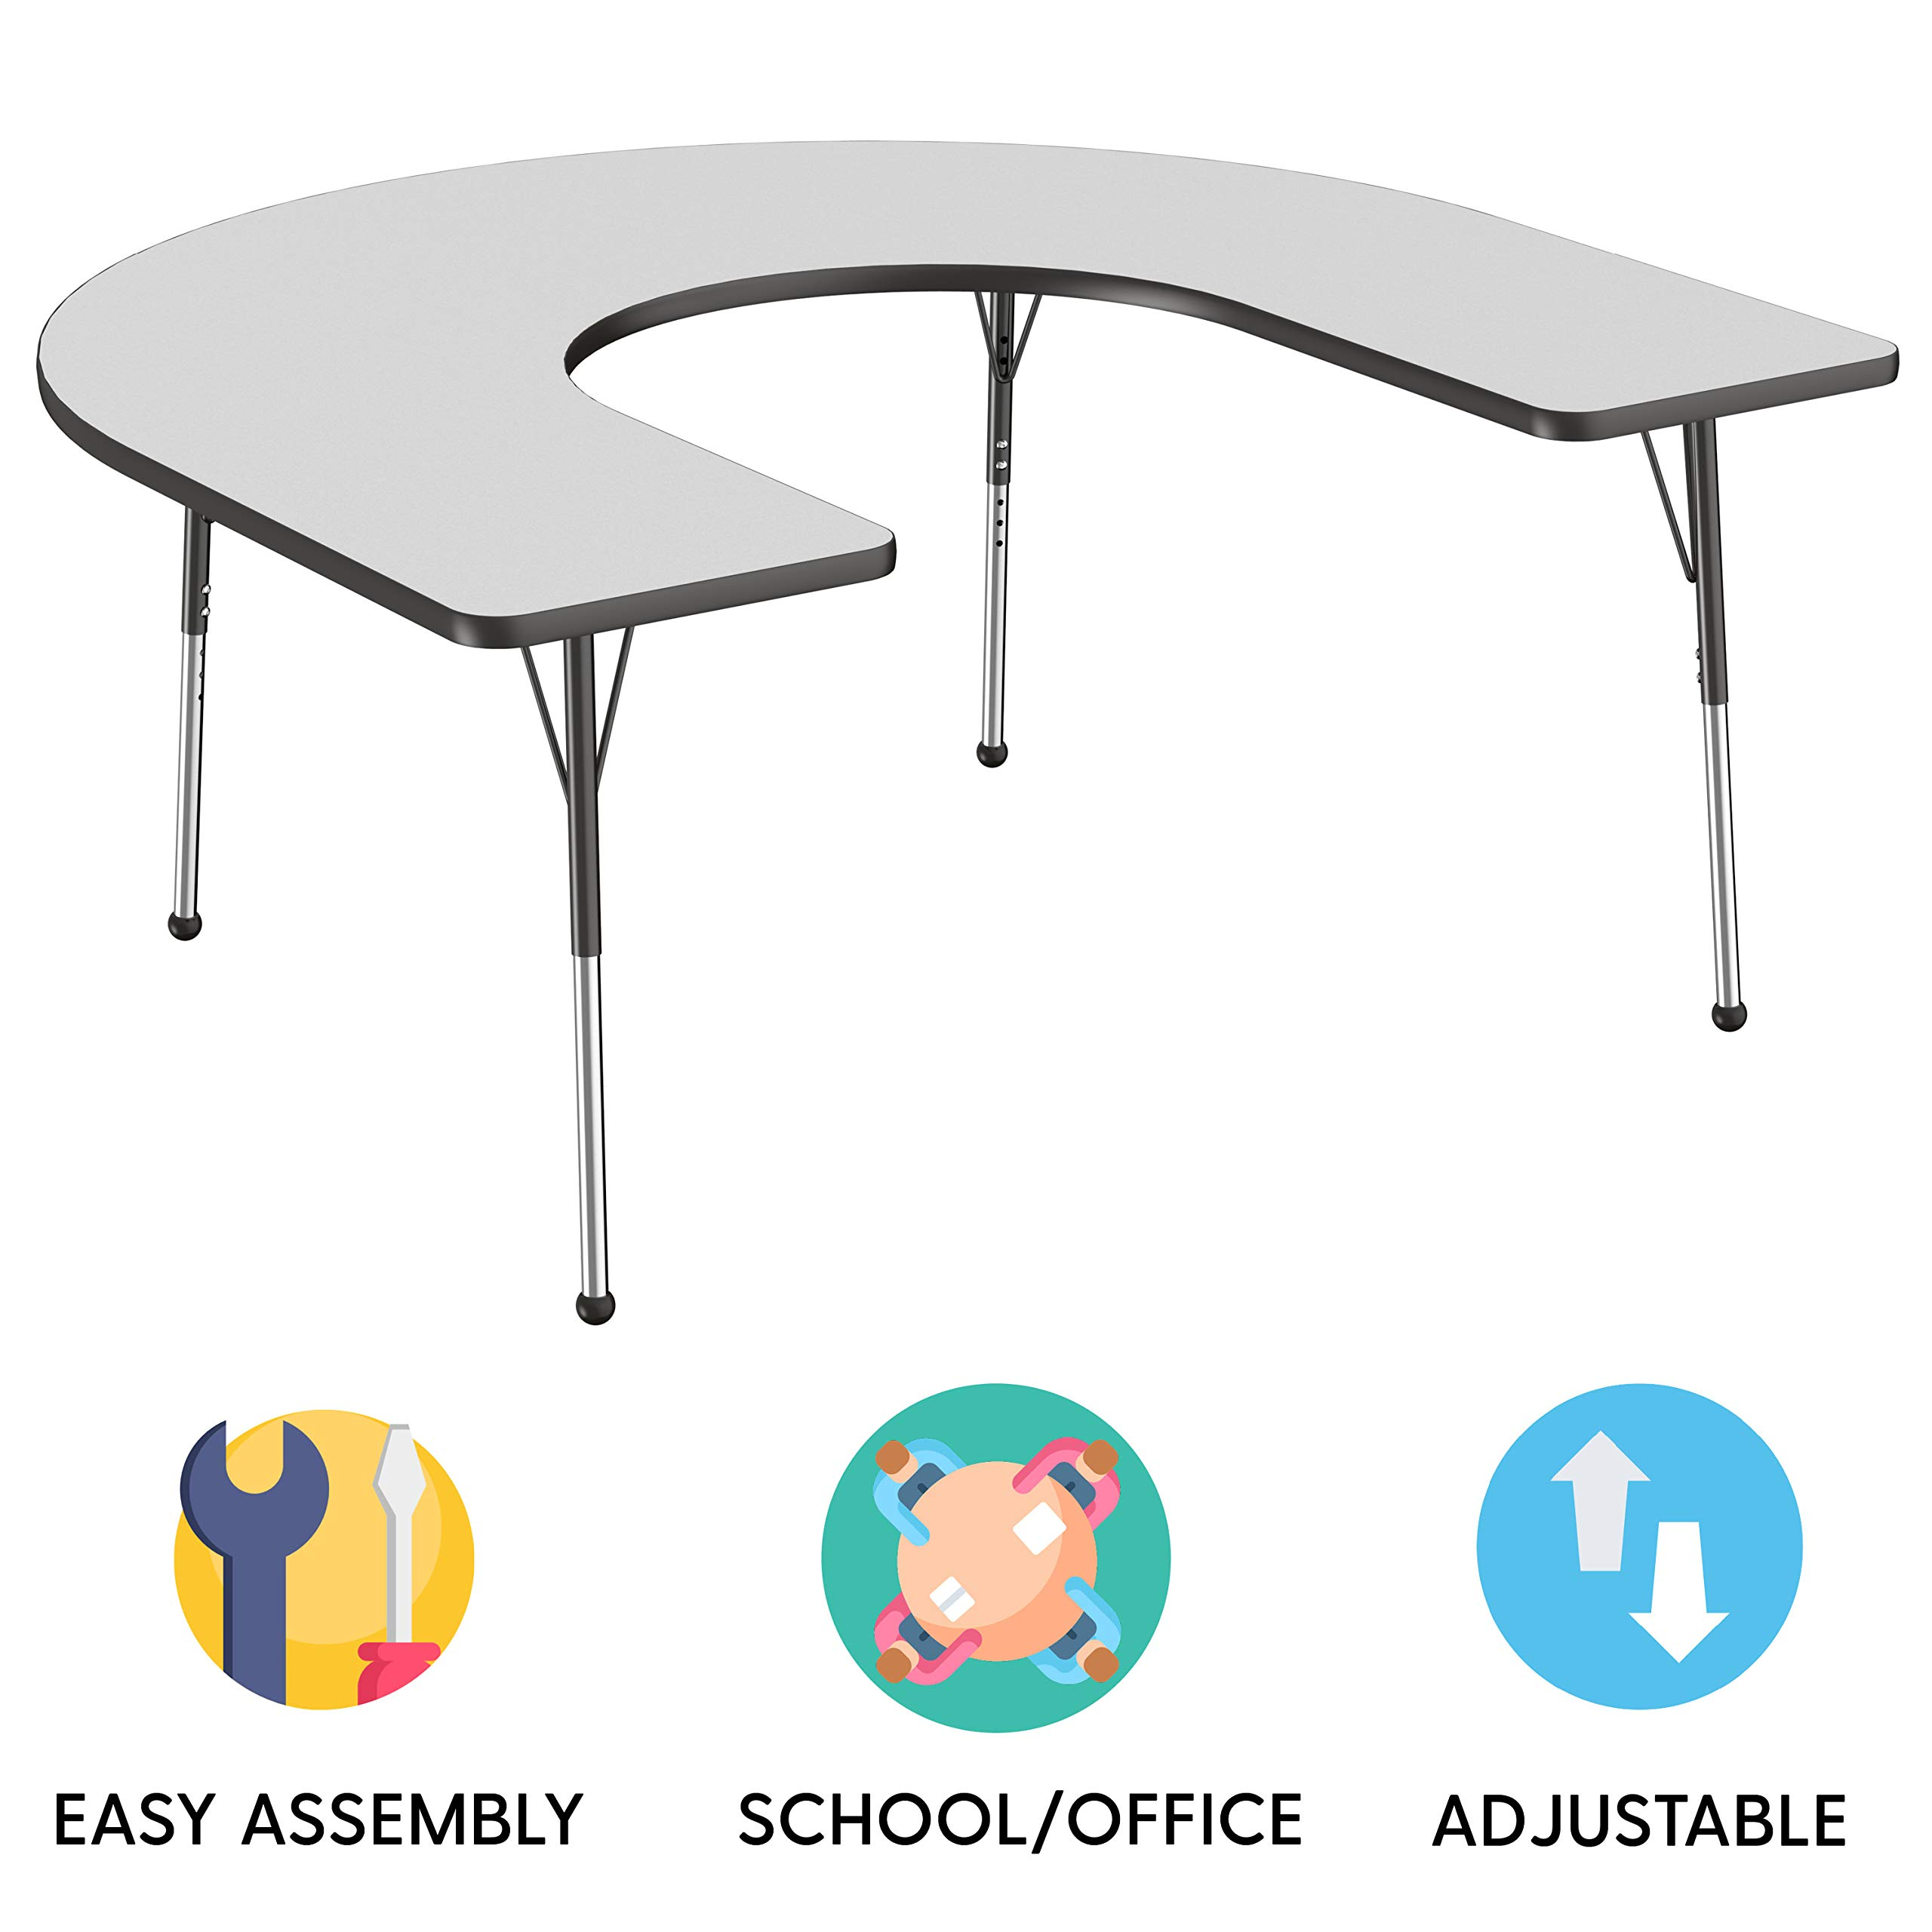 FDP Horseshoe Activity School and Office Table (60 x 66 inch), Standard Legs with Ball Glides for Collaborative Seating Environments, Adjustable Height 19-30 inches - Gray Top and Black Edge by Factory Direct Partners